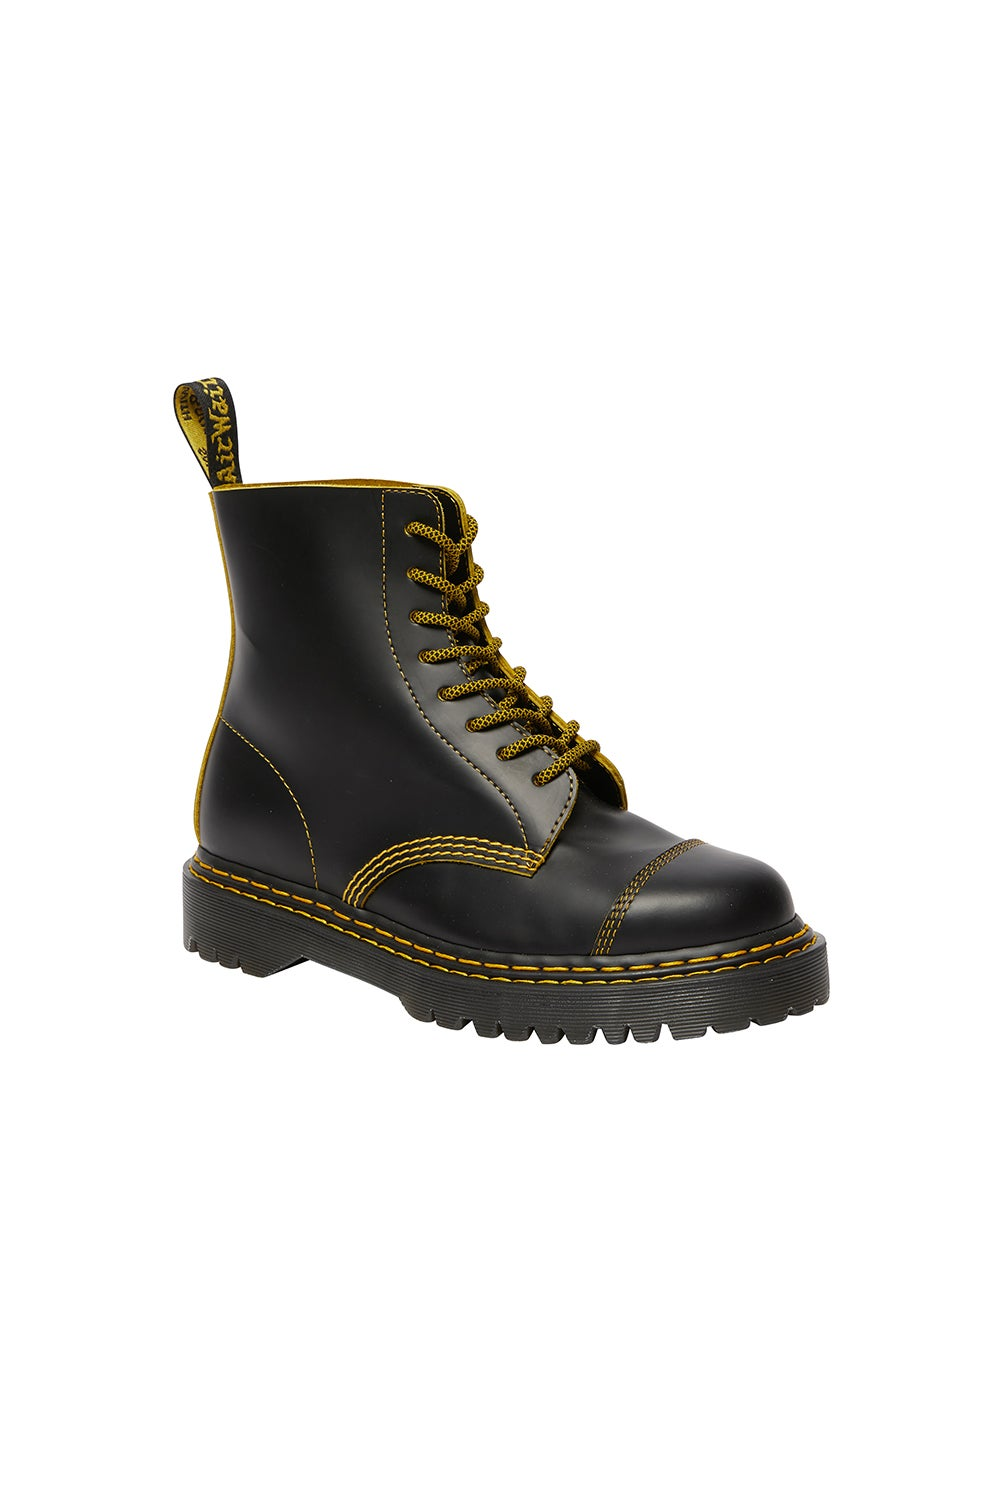 Dr. Martens 1460 Pascal Bex Double Stitch Boot Black